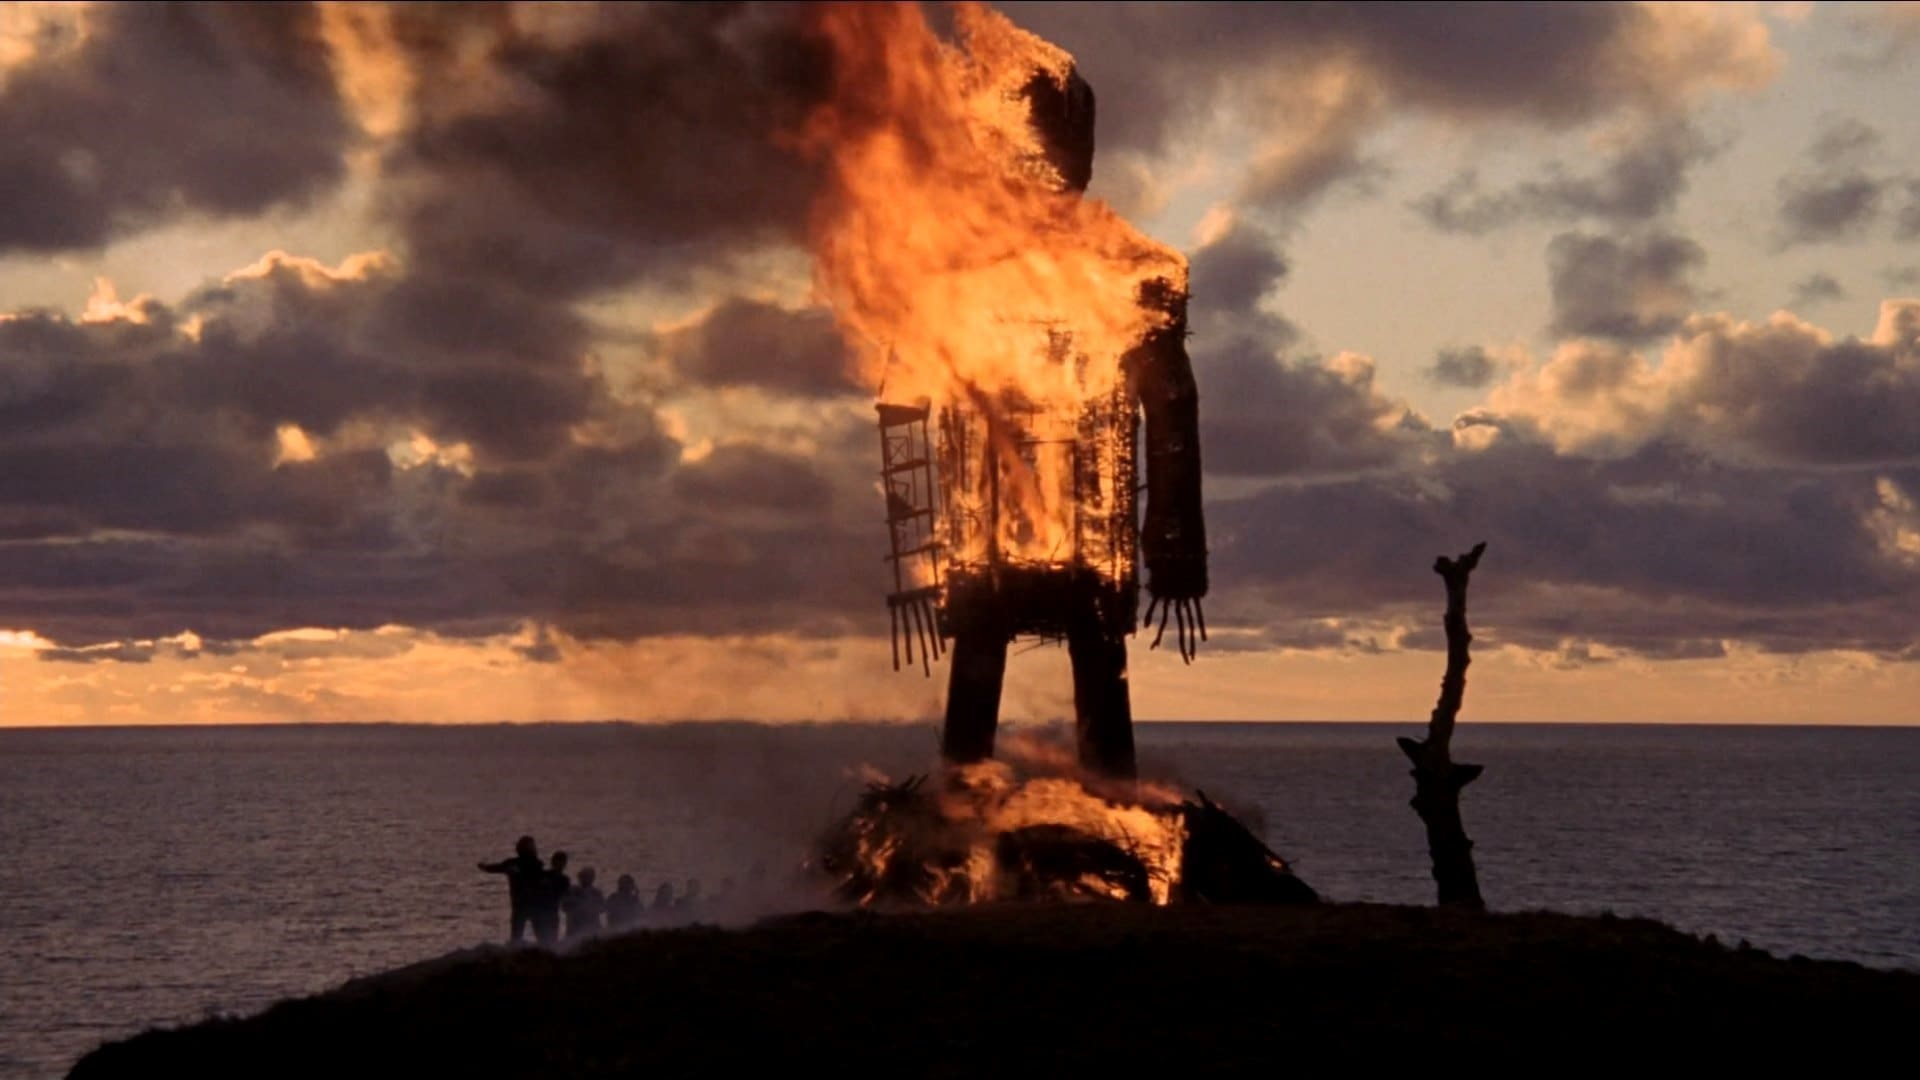 Wicker Man burns